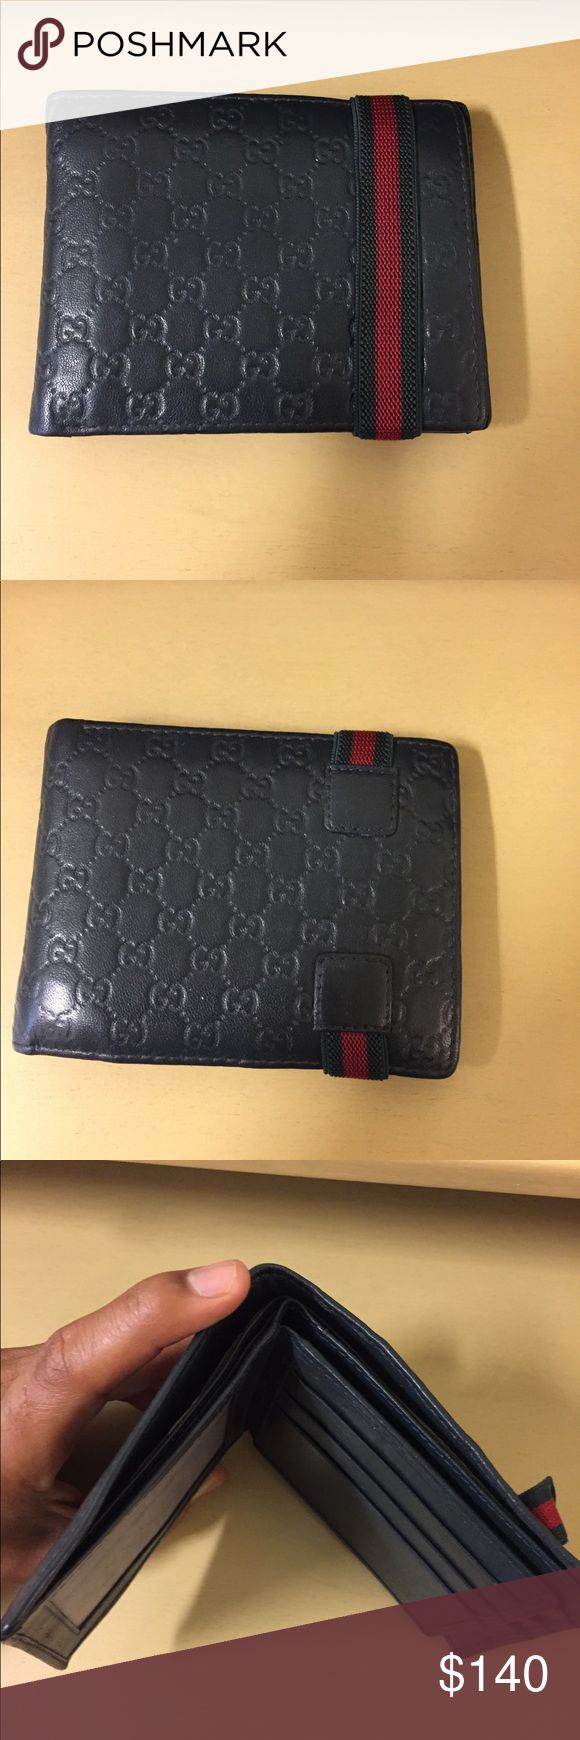 Gucci MicroGuccissima Bi-Fold Wallet Dark Green Mint condition Gucci bi-fold wallet, bought it from another poshmark user for $280 but need money to buy louis vuitton wallet Gucci Bags Wallets